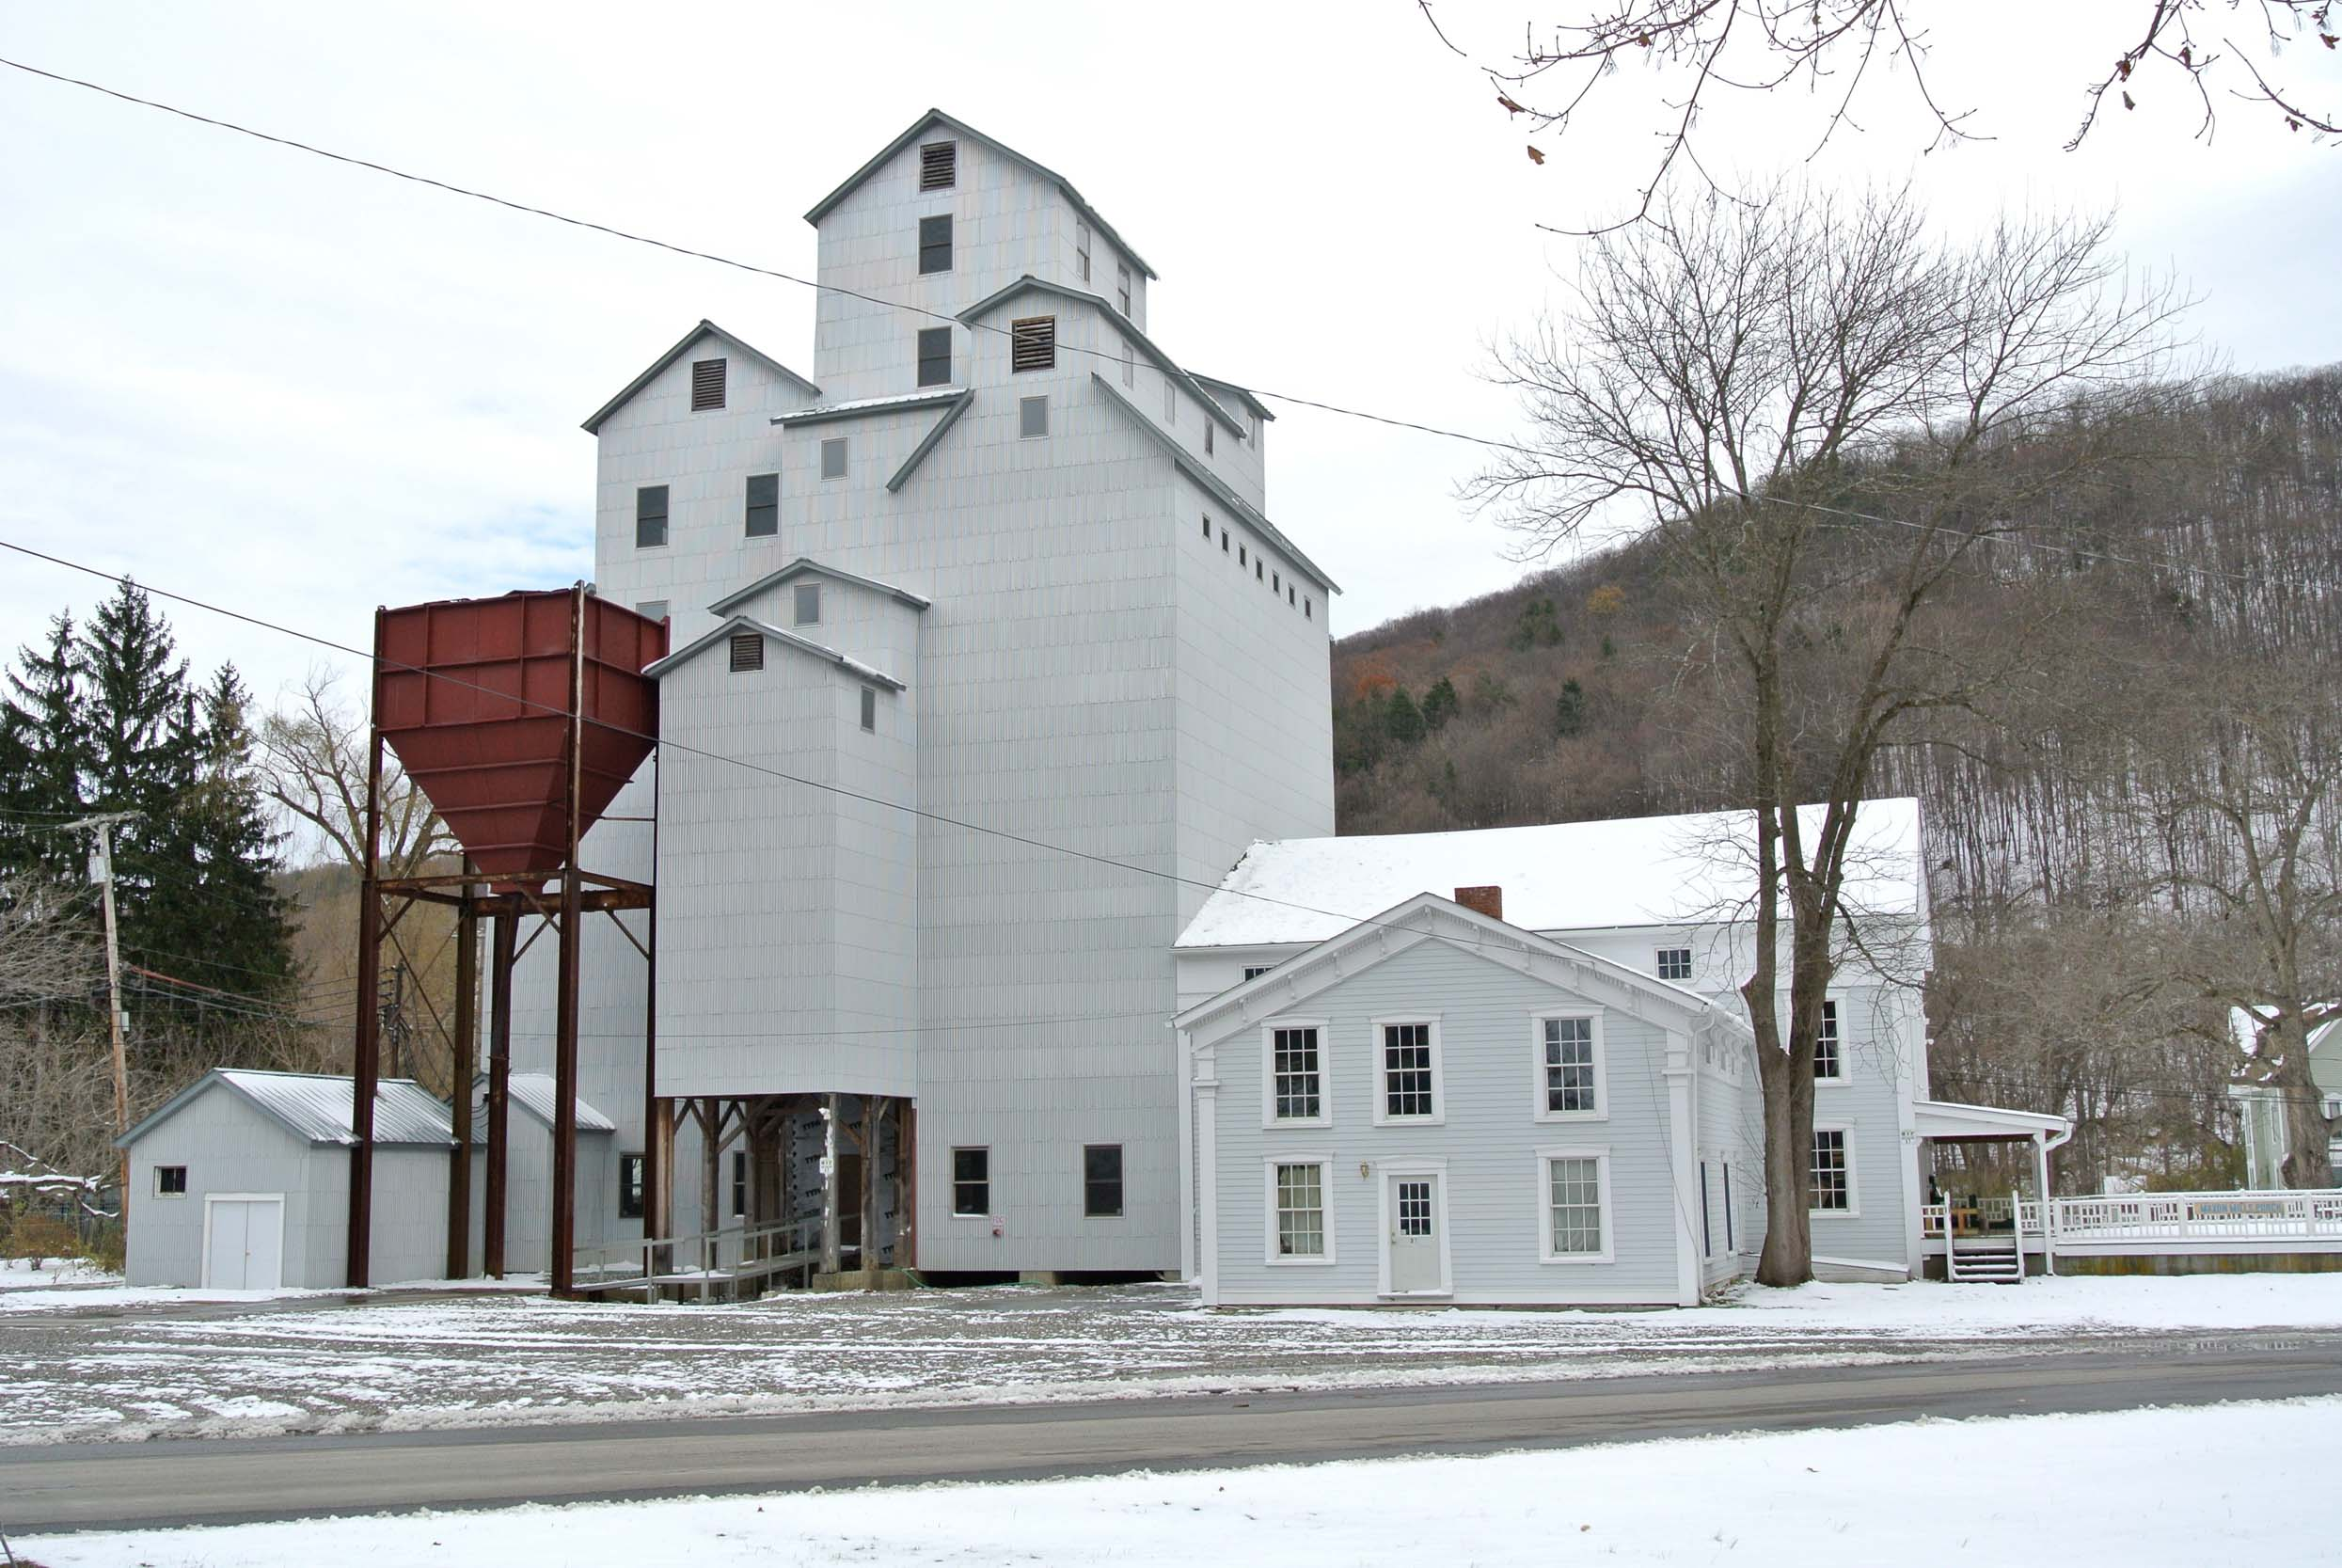 wassaic-project-location-maxon-mills-2012-11-07-23-08-11.jpg